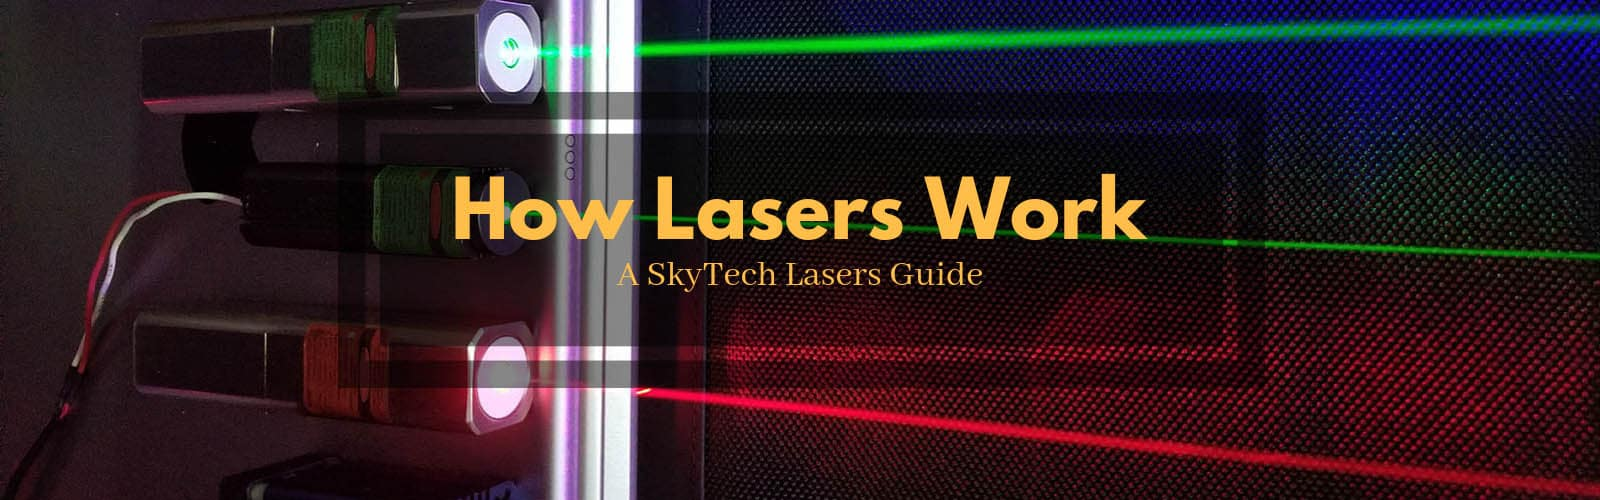 how-lasers-work